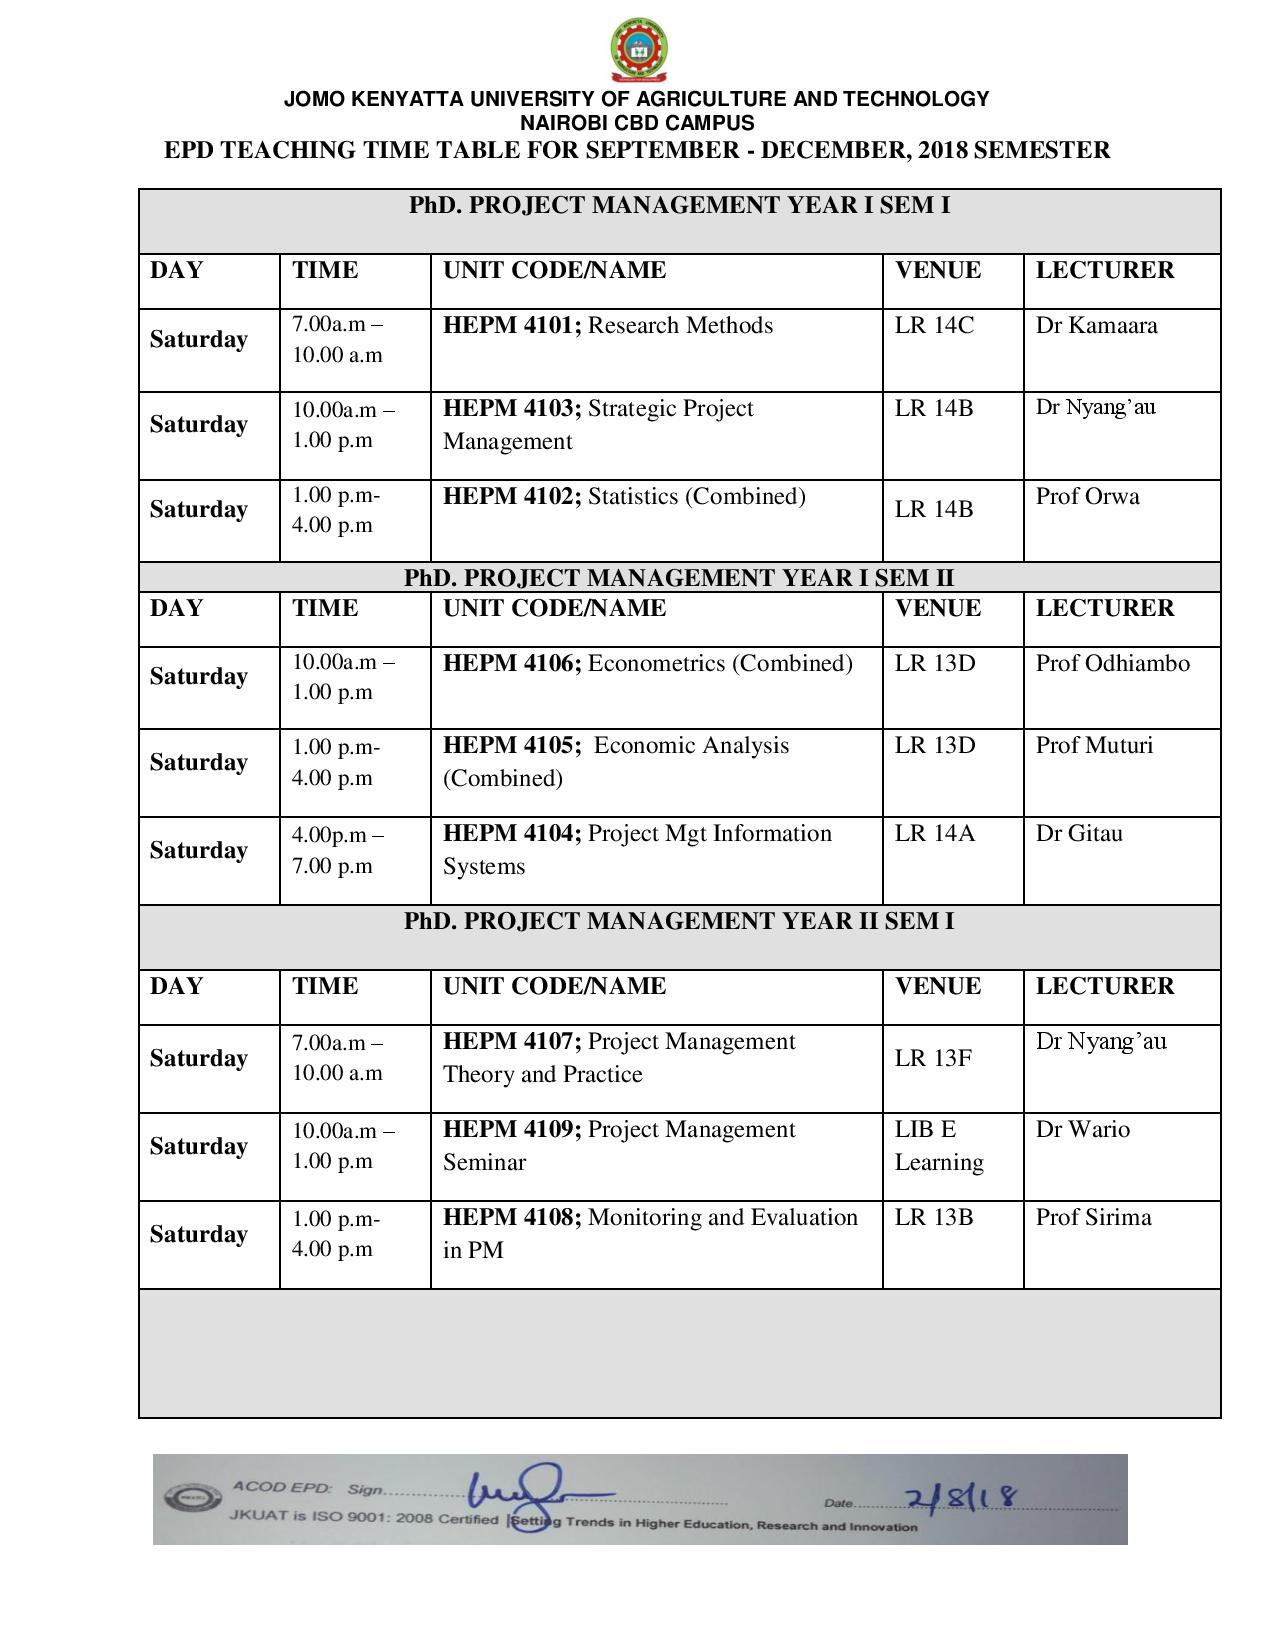 Teaching Time table Sept Dec 2018 EPD page 003 JKUAT